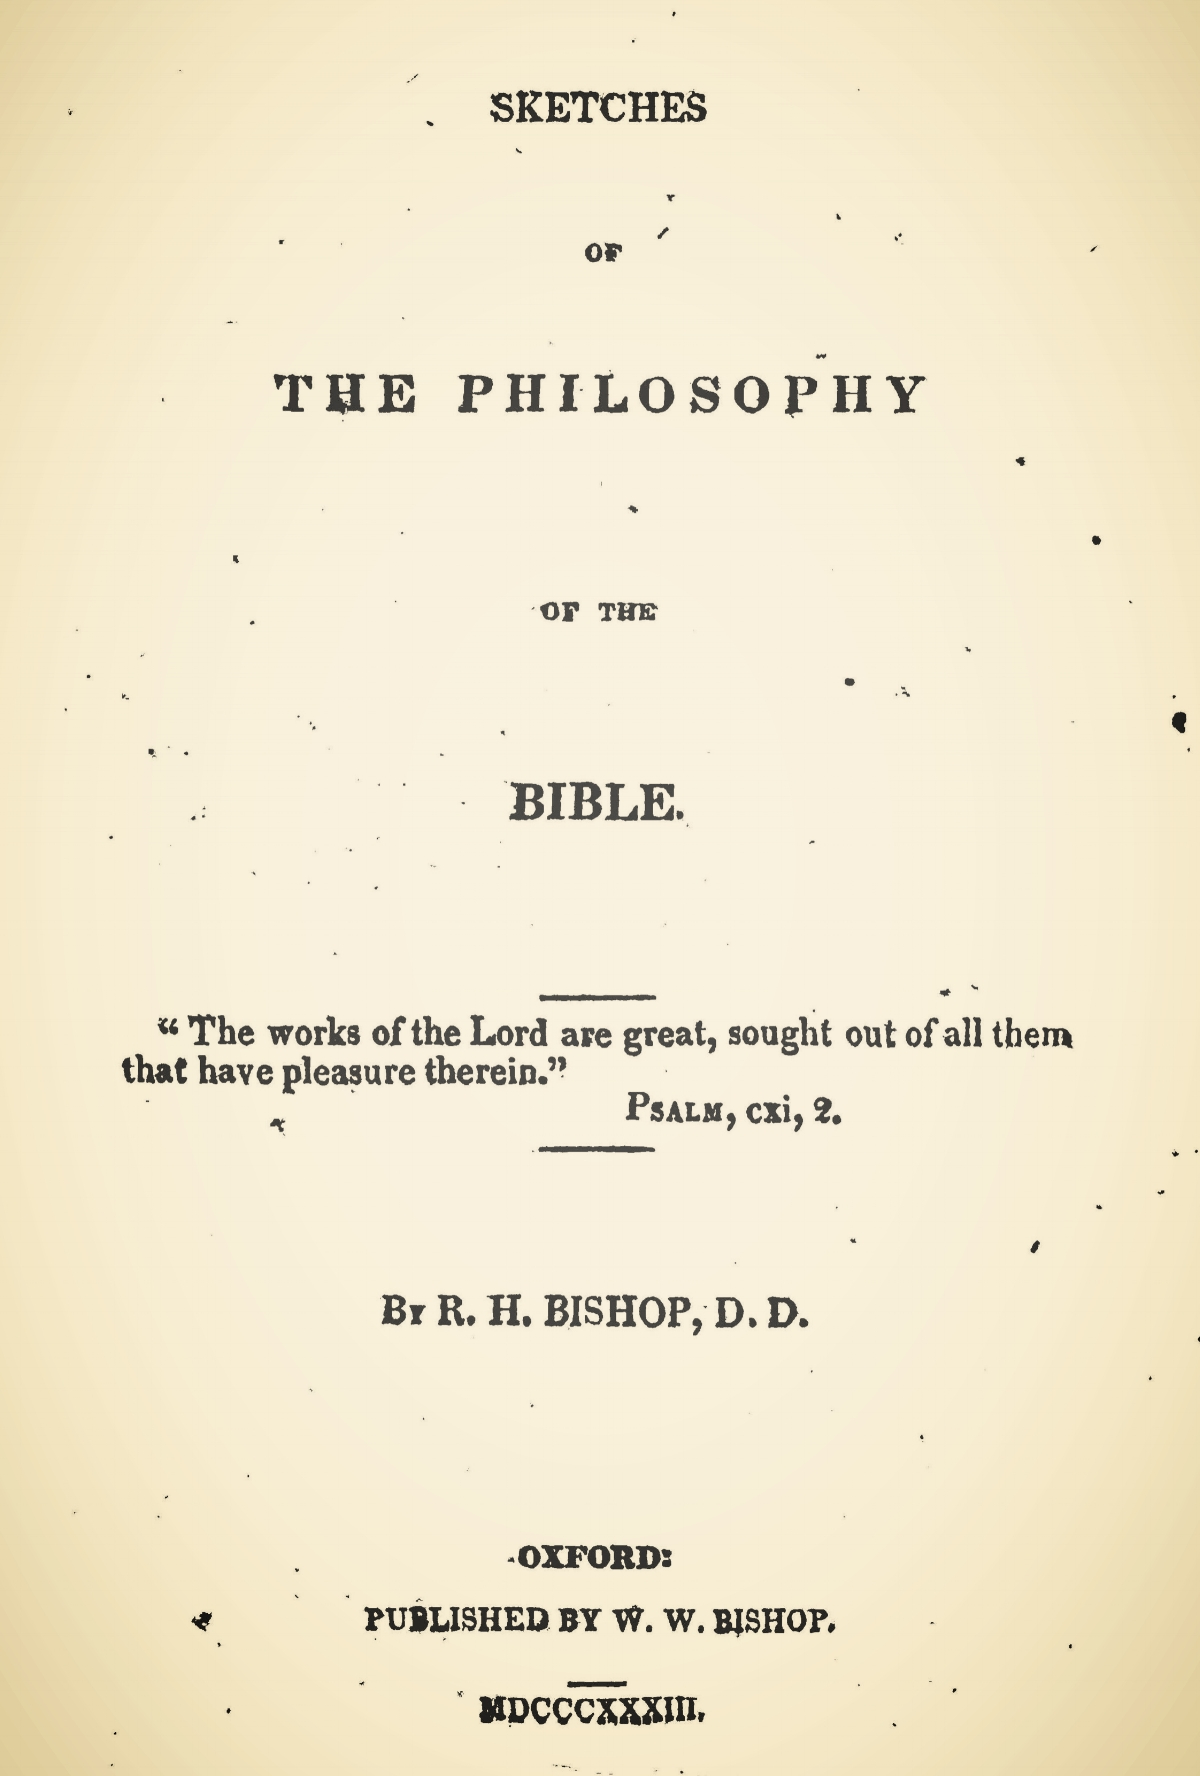 Bishop, Robert Hamilton, Sketches of the Philosophy of the Bible Title Page.jpg